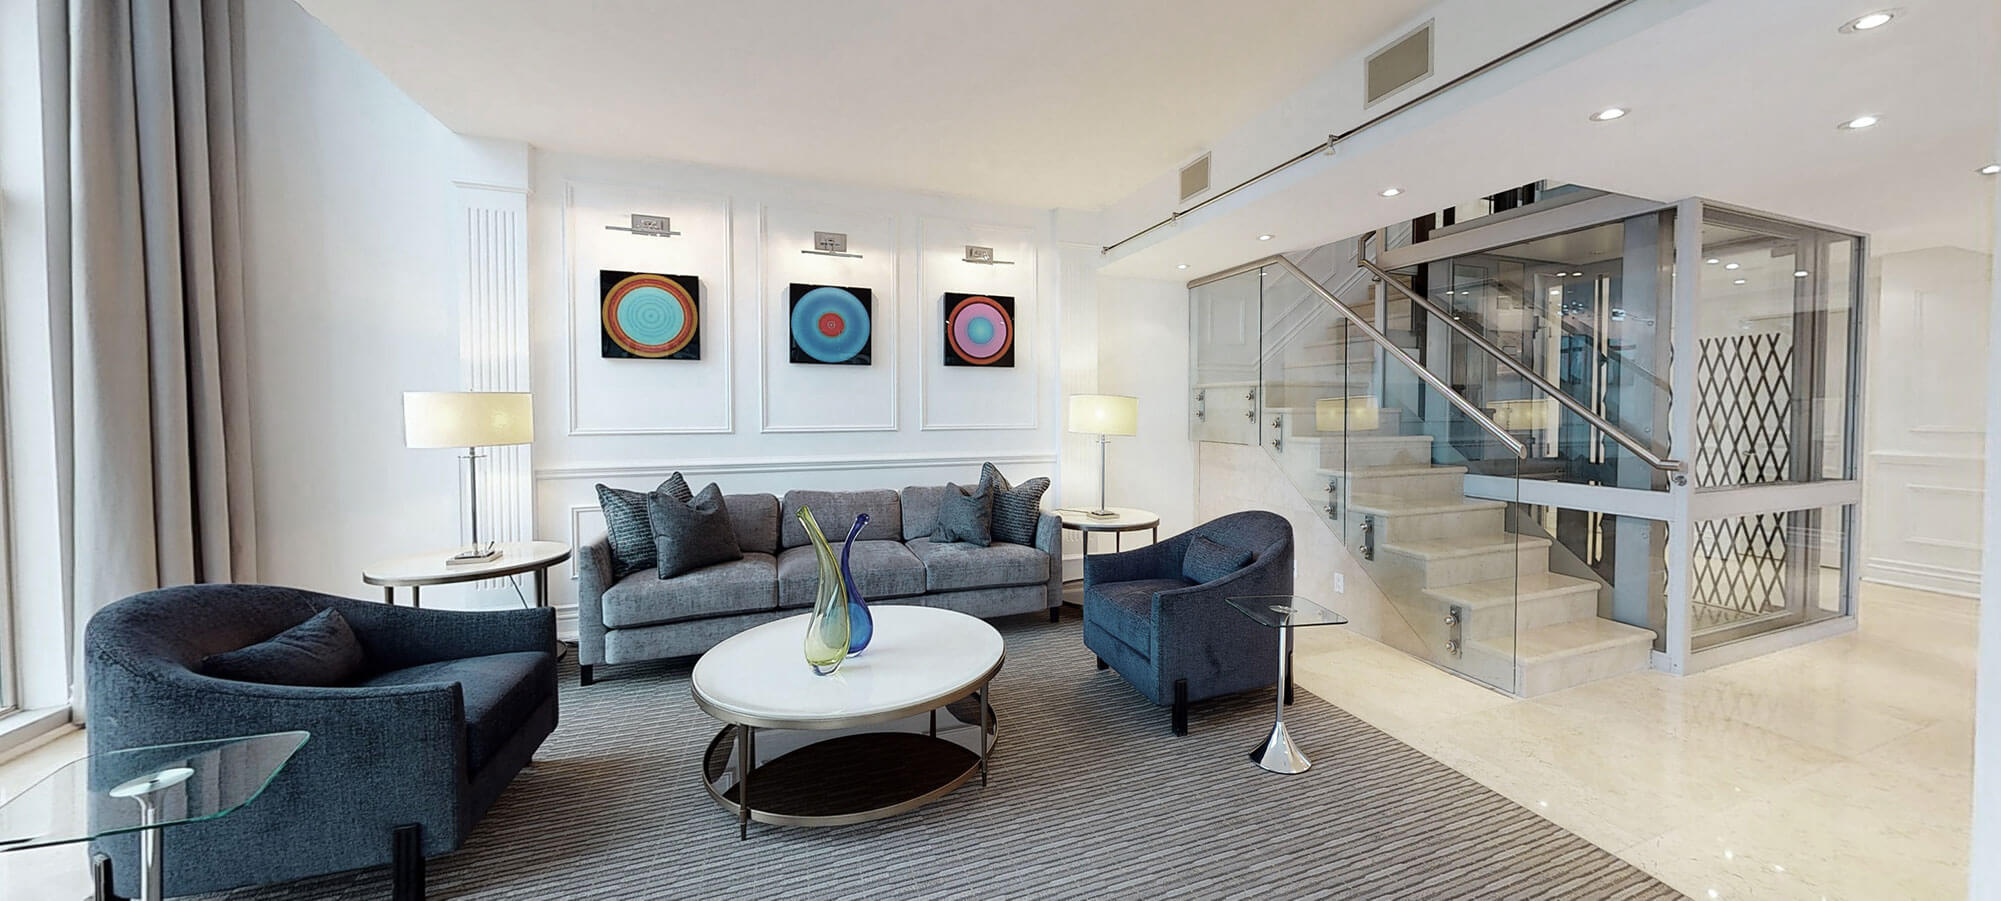 Living room at The SoHo Hotel 3-storey Penthouse